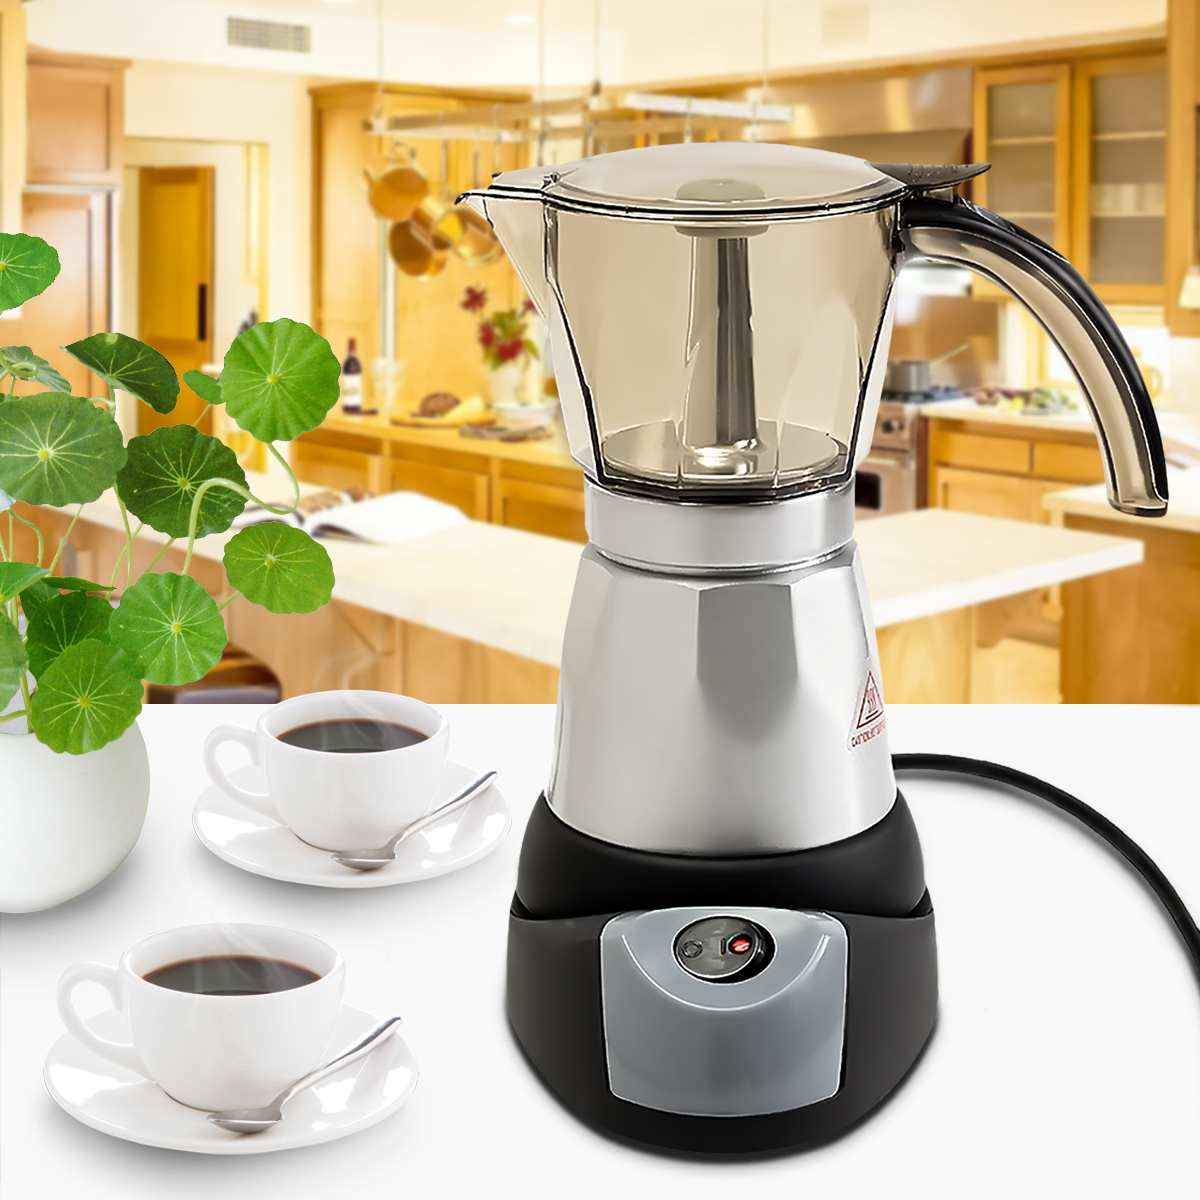 300ml Electric Automatic Coffee Machine Mini Coffee Maker Kitchen Cafetiere Heater 6 Cups 3 Minutes AU Plug 220-240V Tea Pot